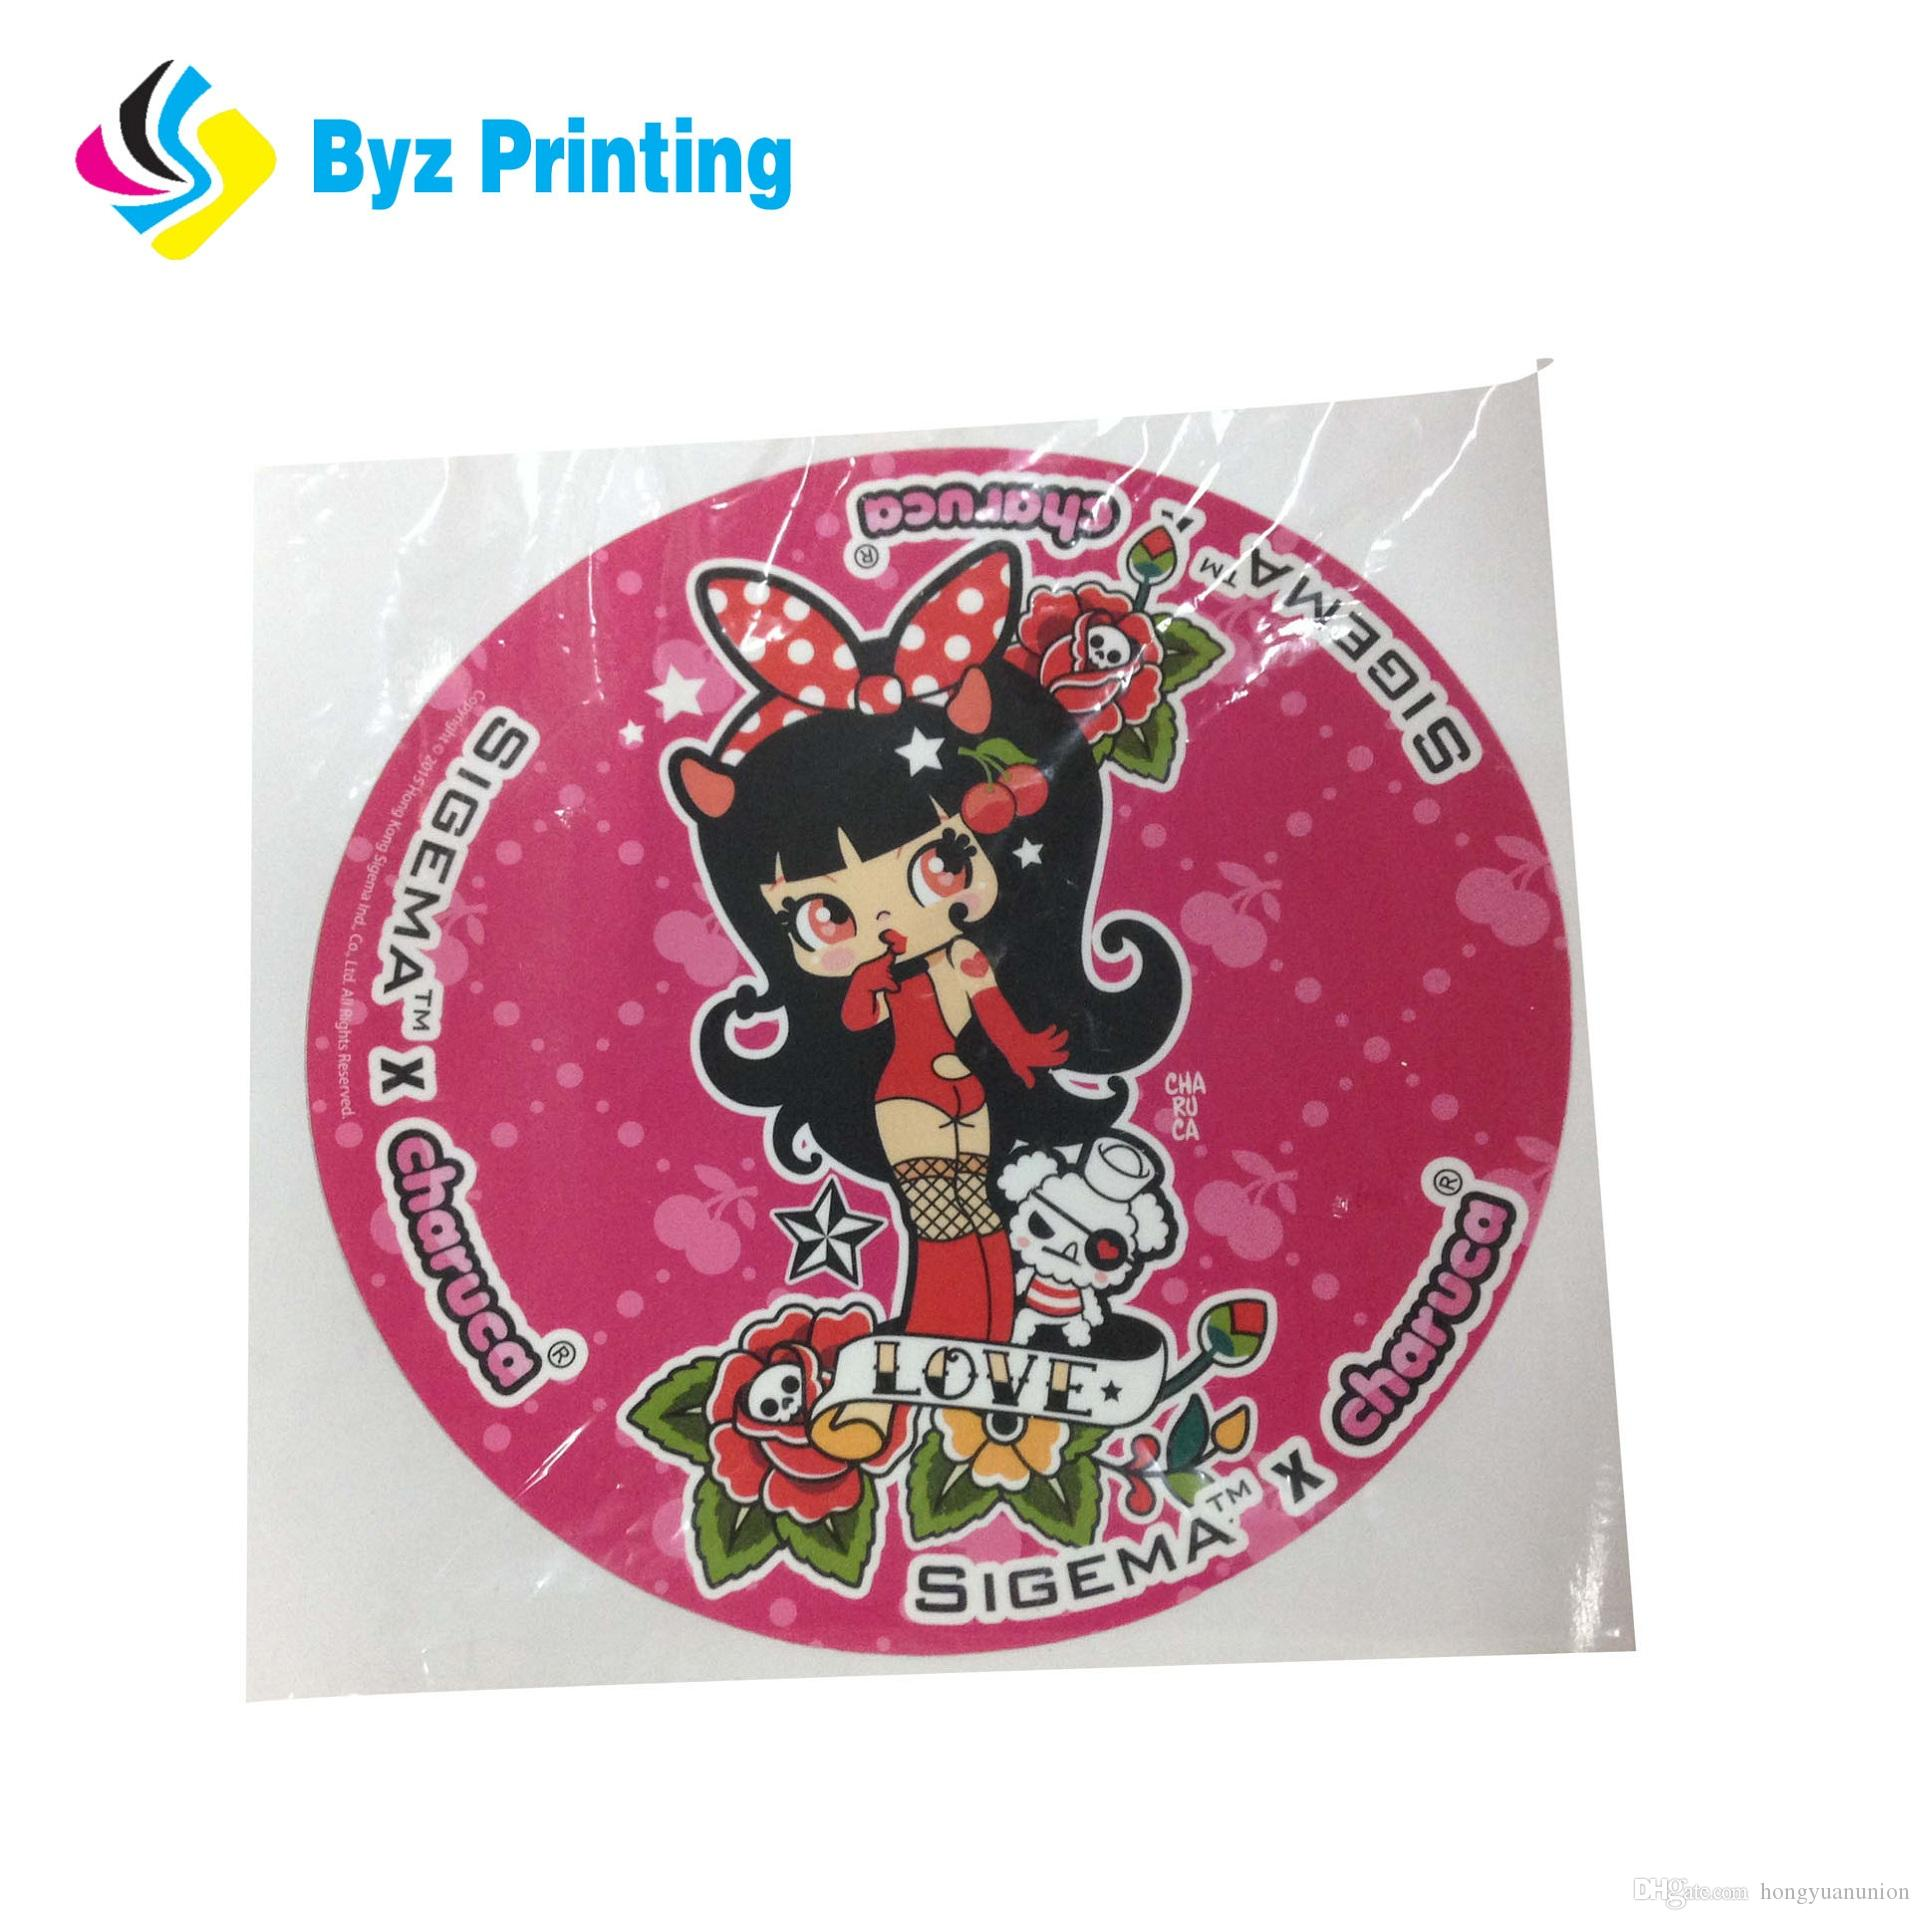 2019 die cutting high quality printing custom self adhesive black circle stickers label waterproof round vinyl sticker from hongyuanunion 0 04 dhgate